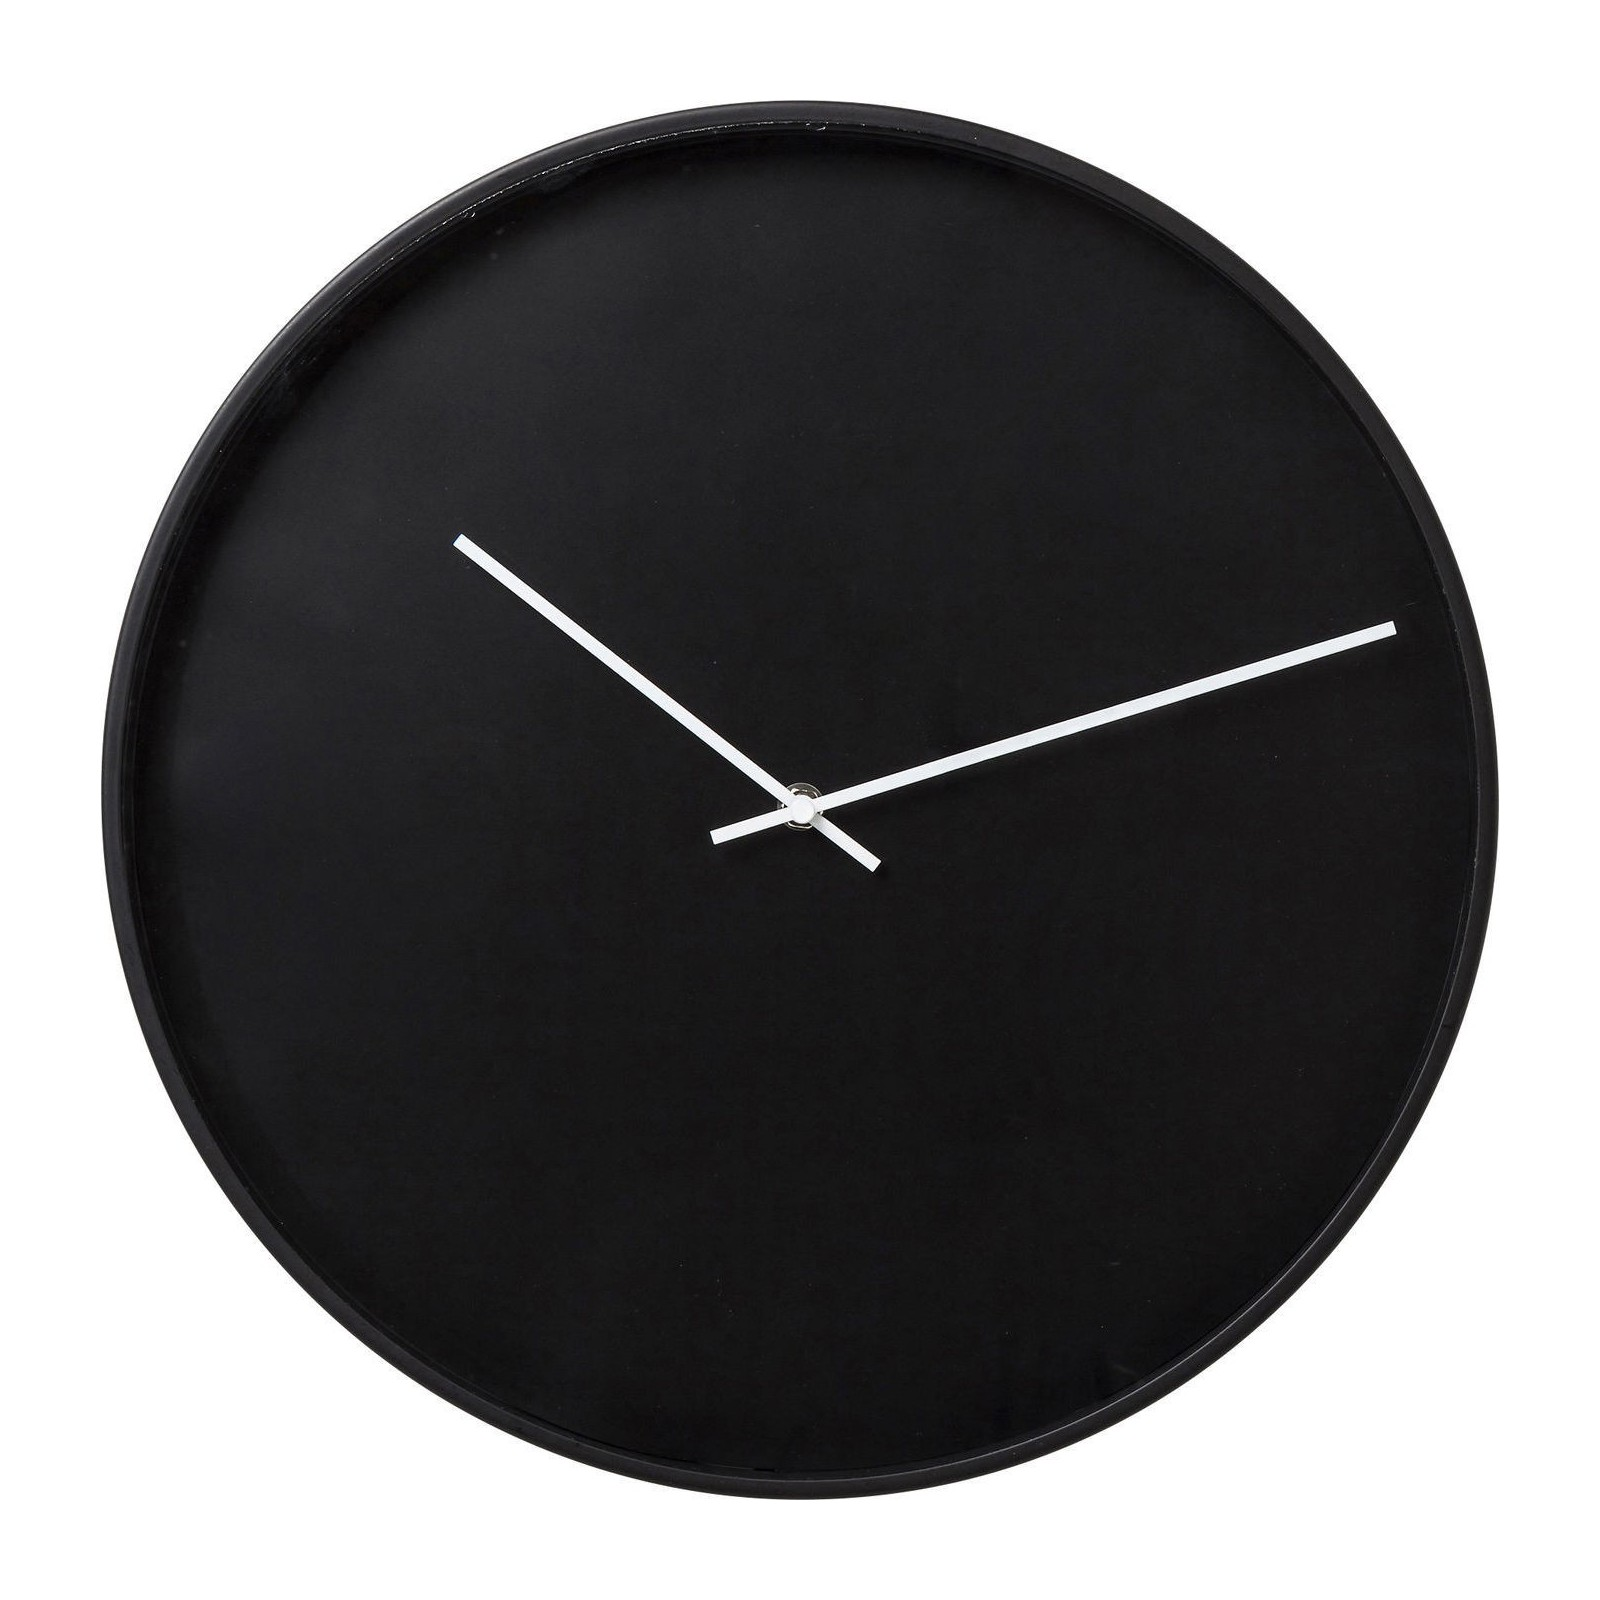 horloge murale timeless noire 40cm kare design. Black Bedroom Furniture Sets. Home Design Ideas